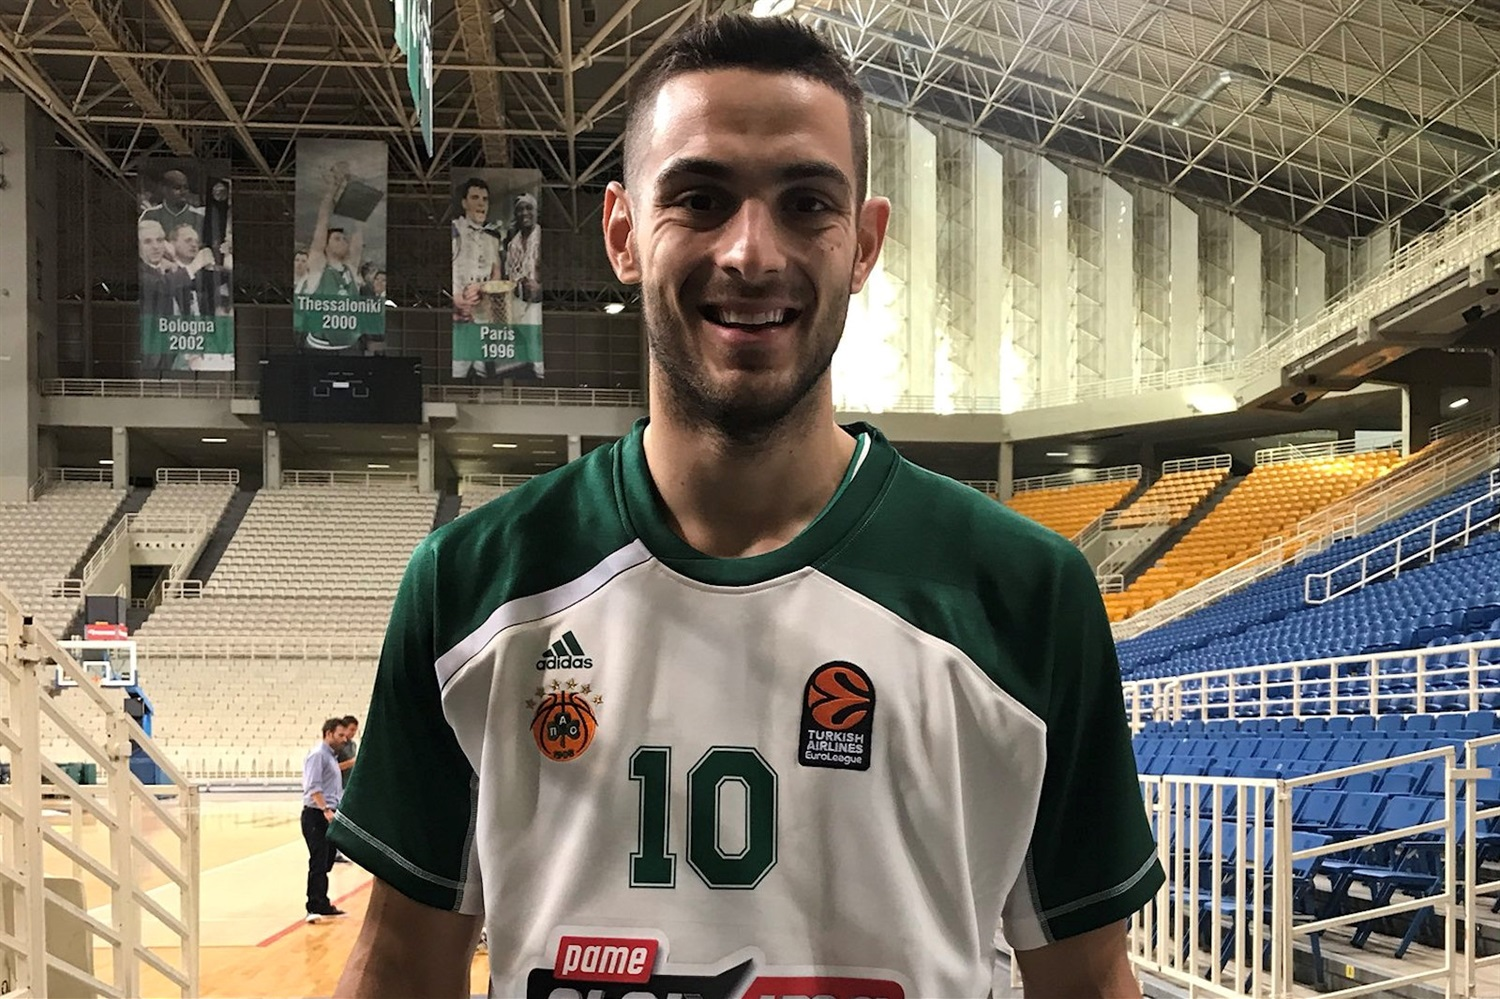 Ioannis Papapetrou - Panathinaikos OPAP Athens Media Day 2018 - EB18